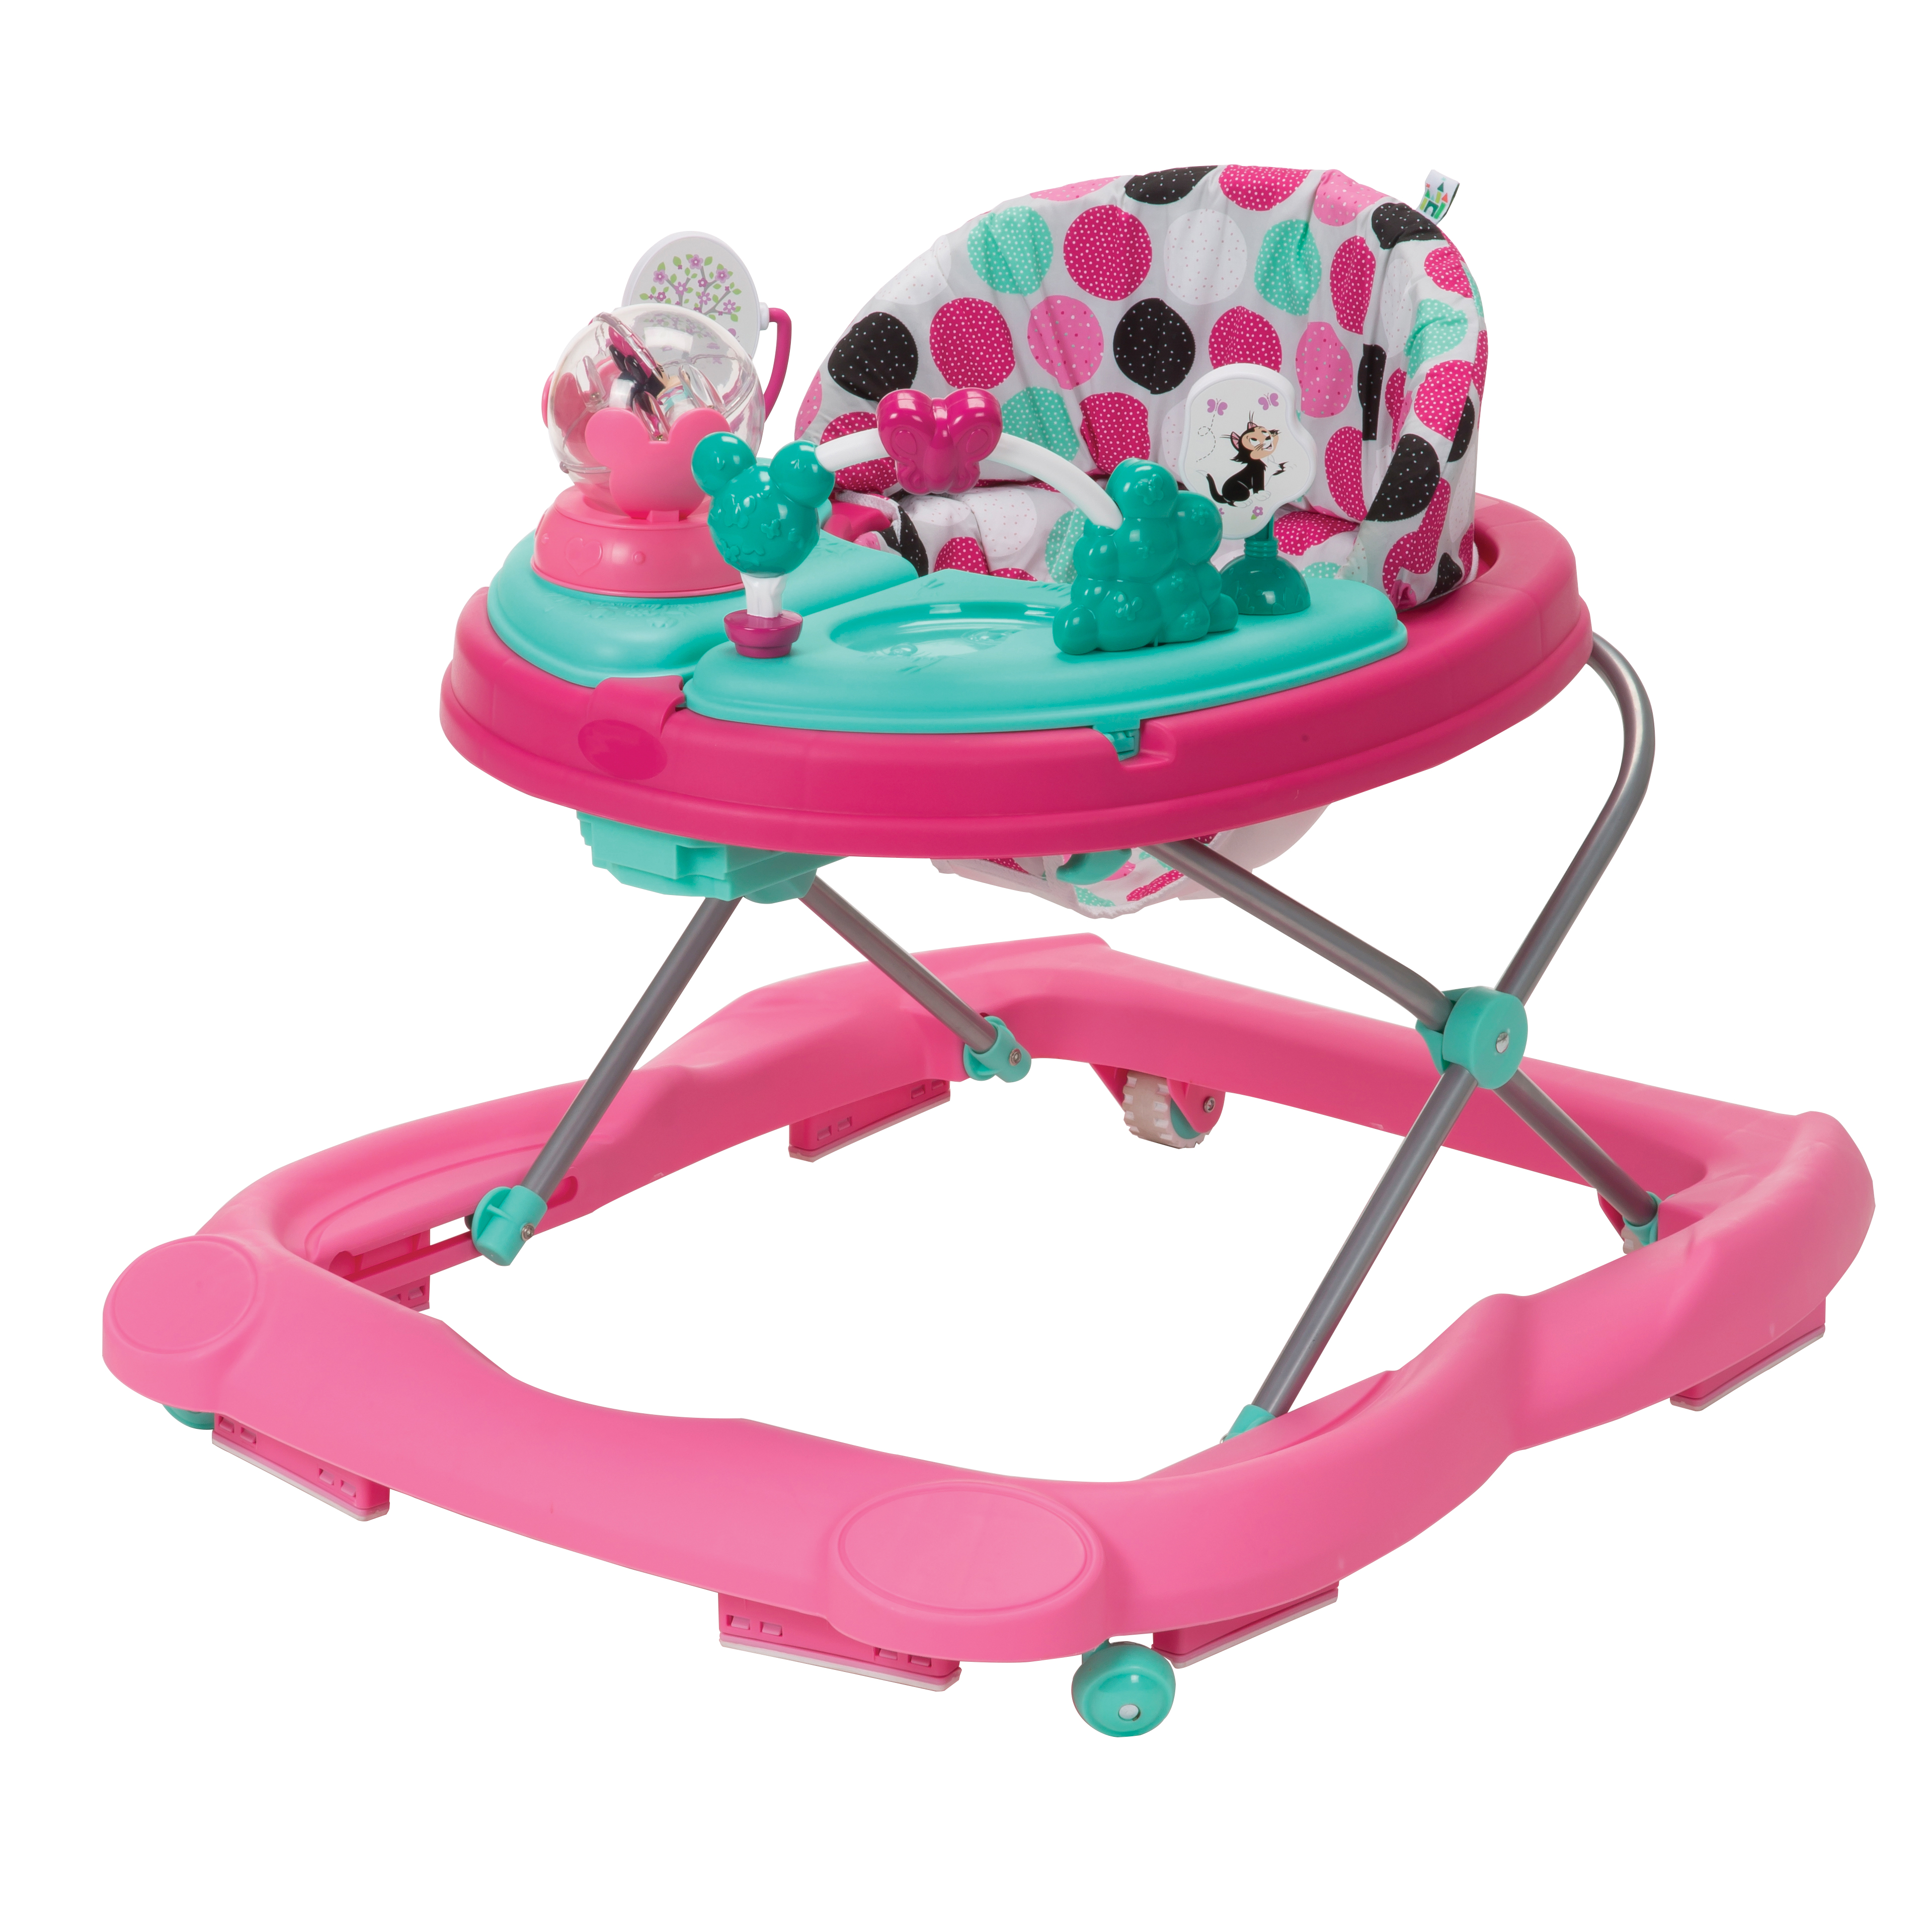 Disney Baby Ready Set Music and Lights Walker, Minnie Mouse Dottie